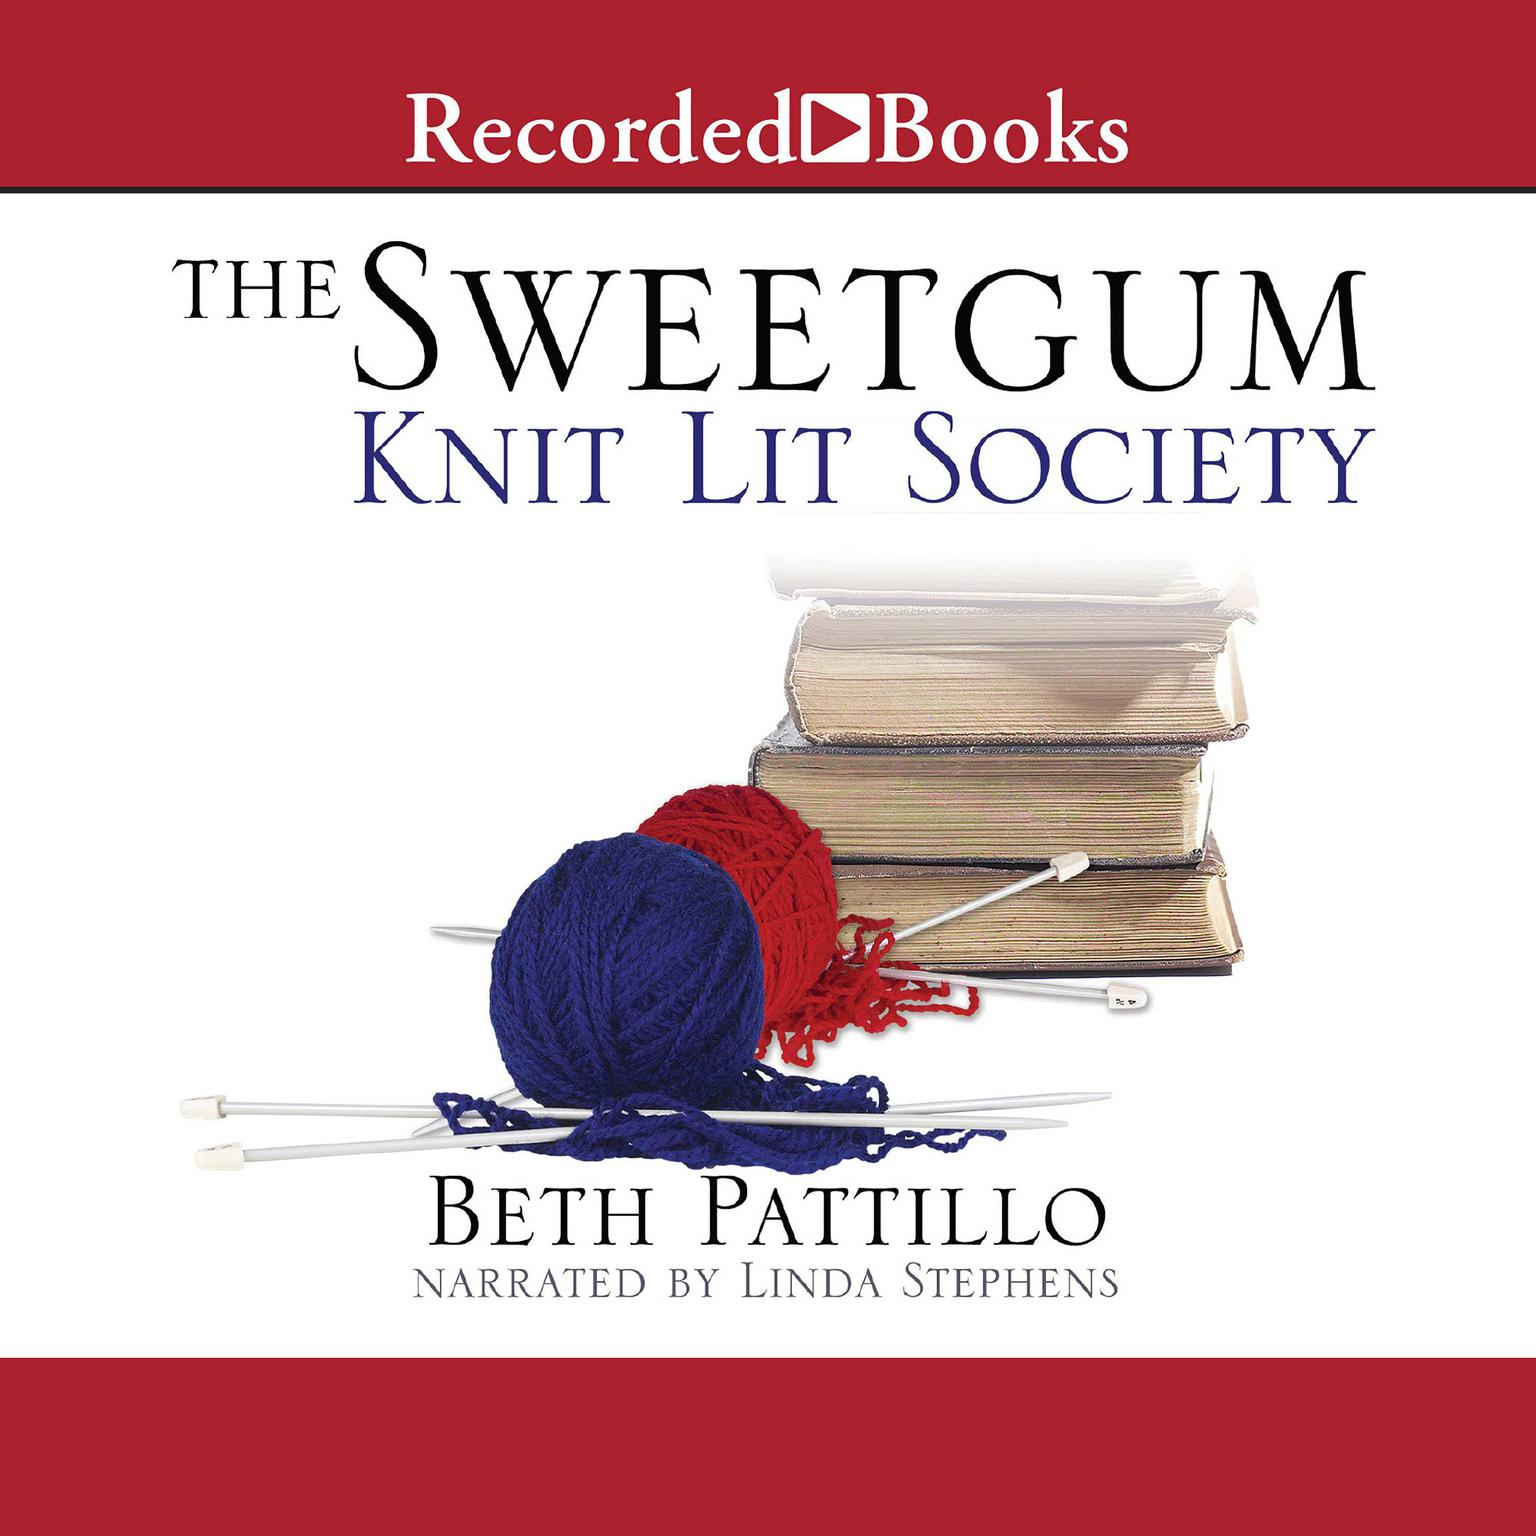 Printable Sweetgum Knit Lit Society Audiobook Cover Art